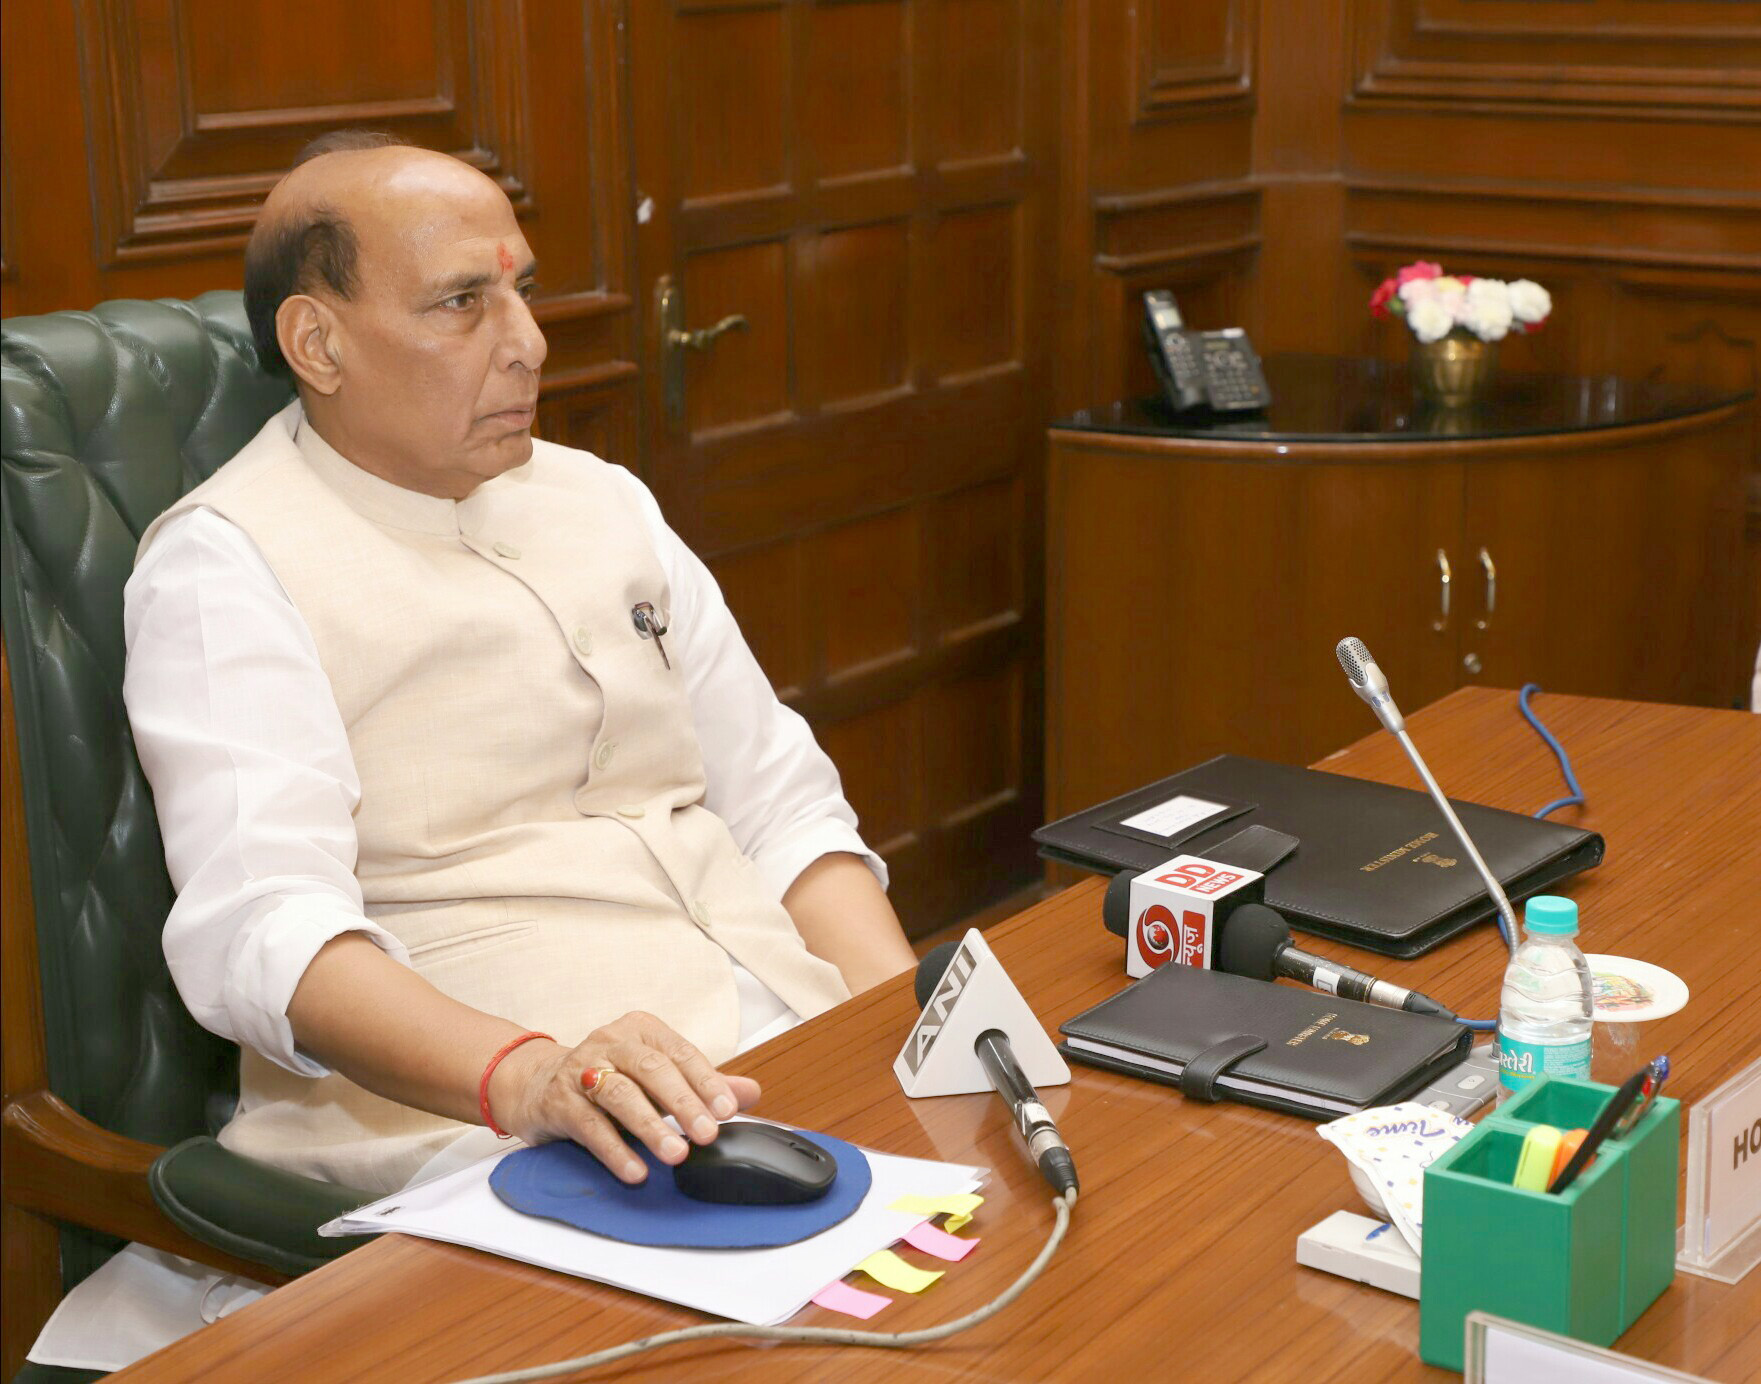 The Union Home Minister, Shri Rajnath Singh launching an Online Analytical Tool to monitor flow of foreign contributions under FCRA, in New Delhi on June 01, 2018.